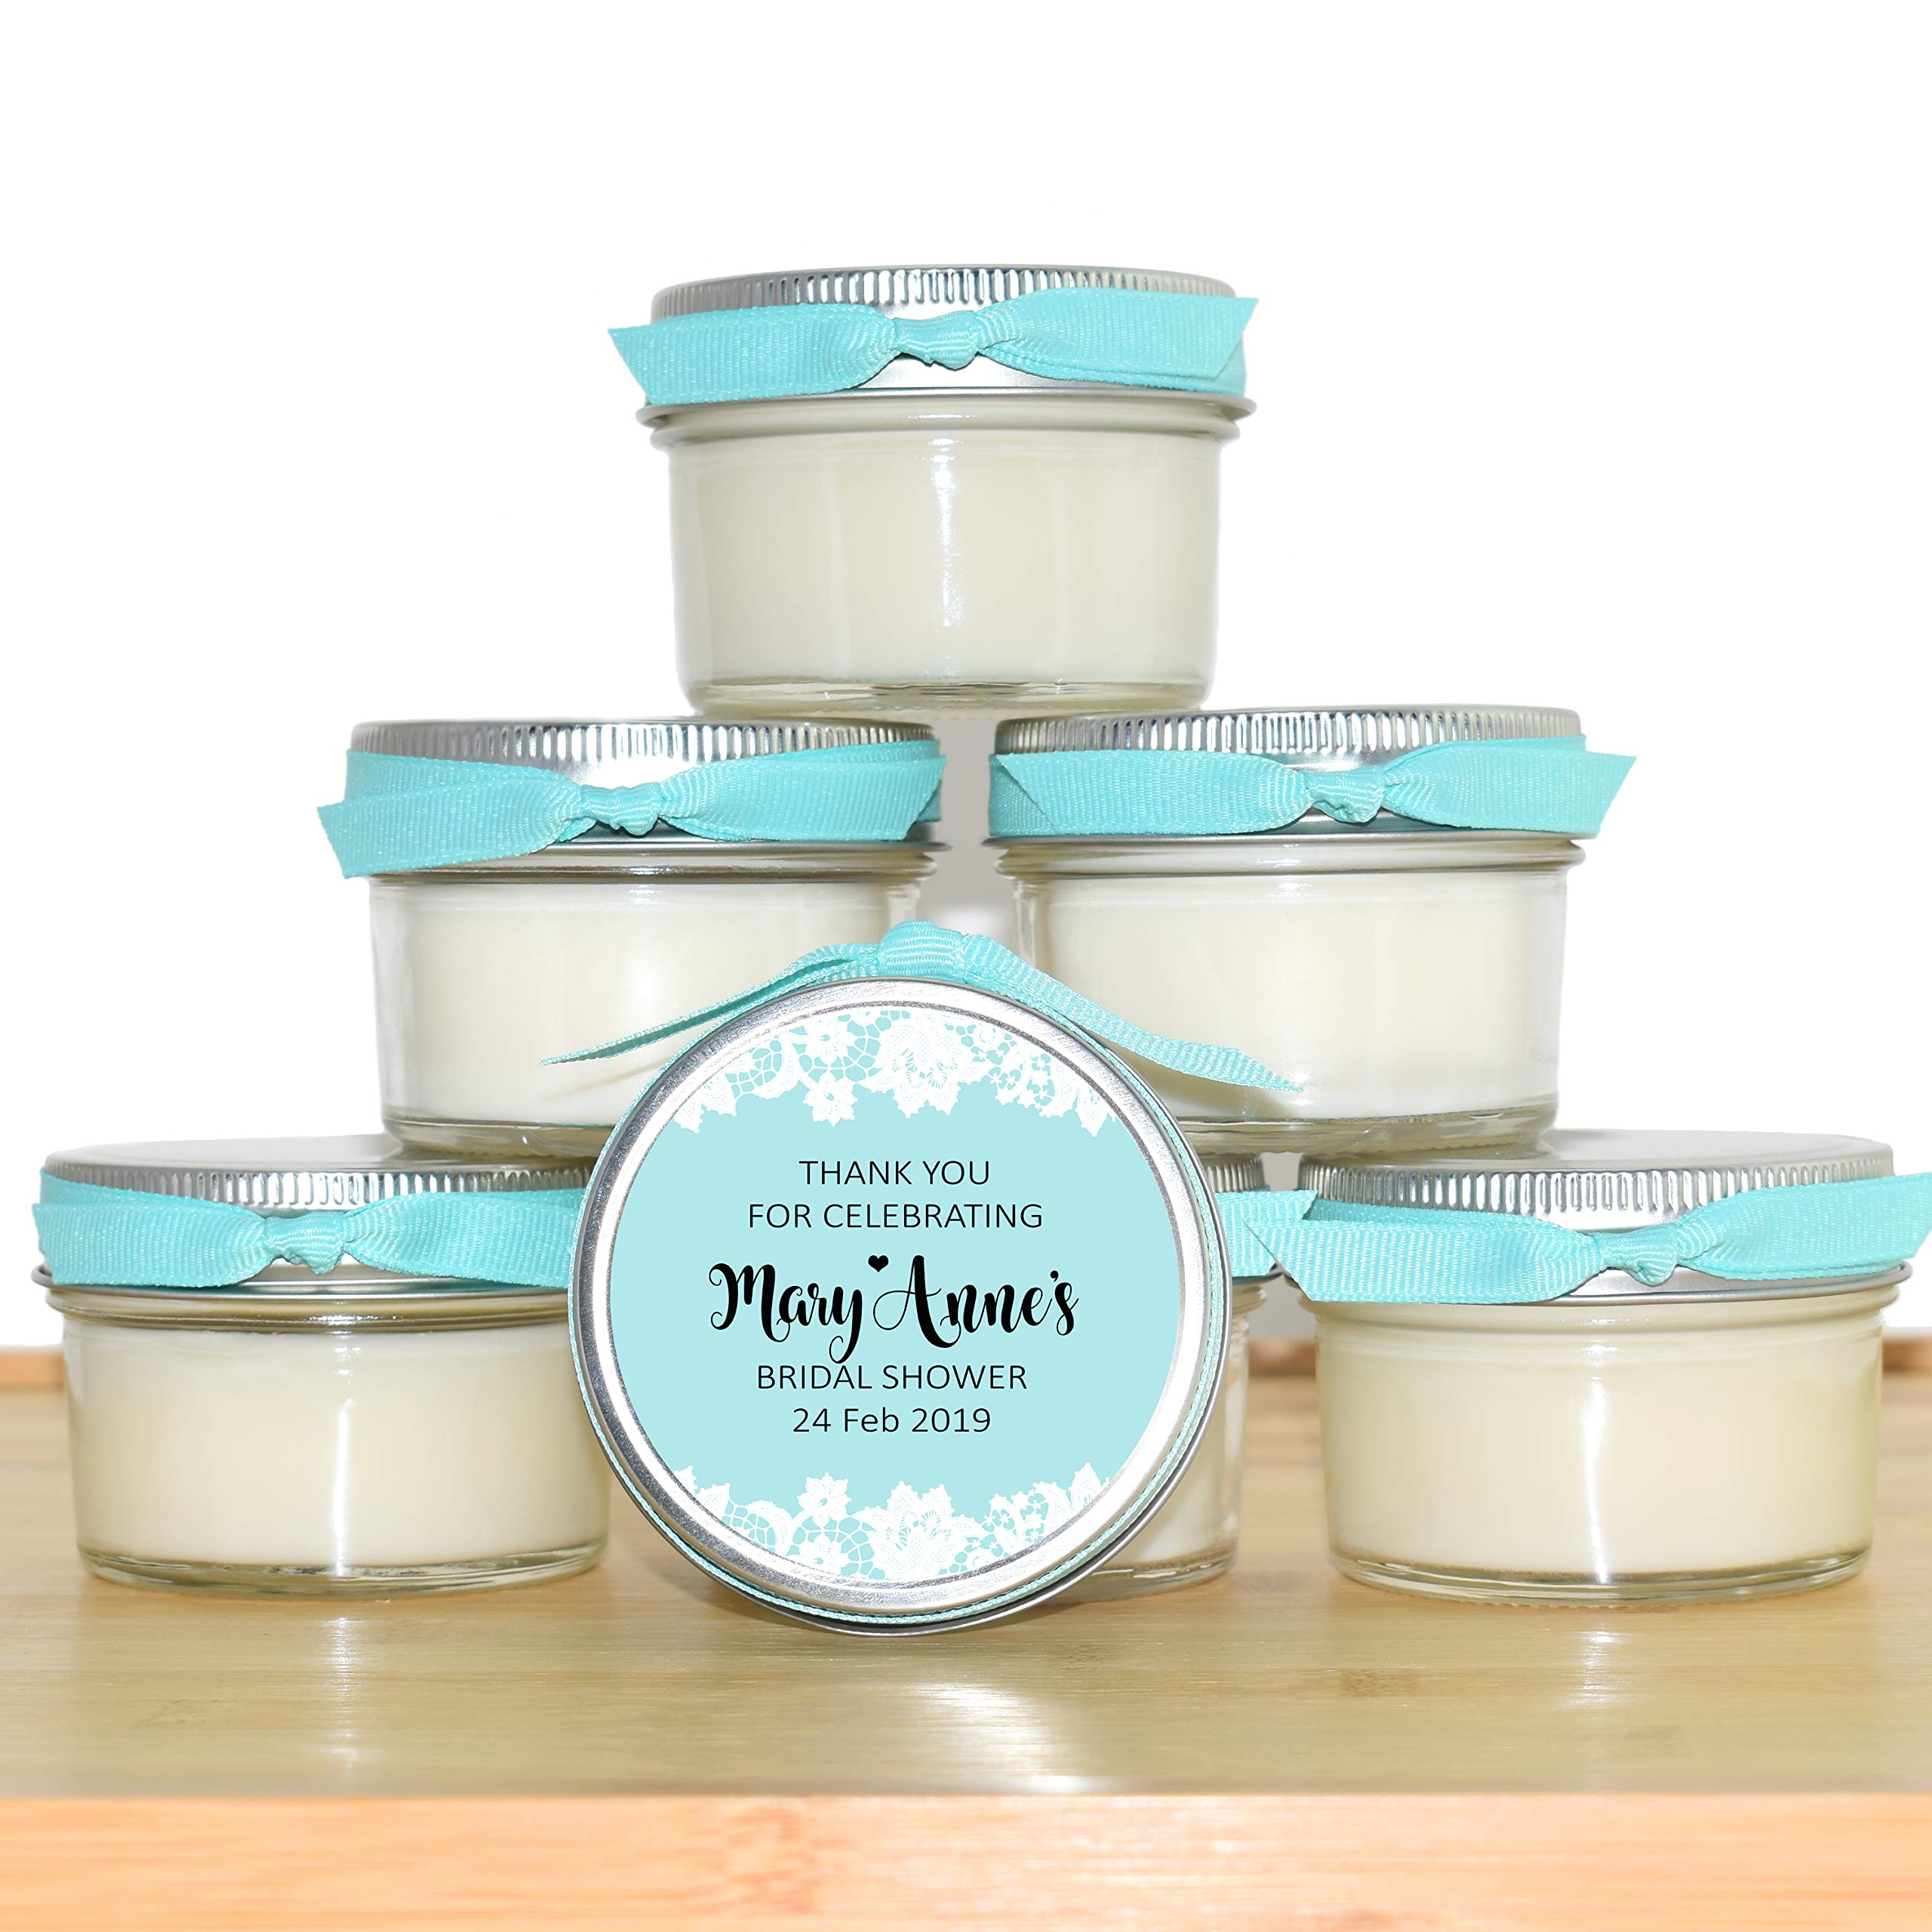 30 Bridal Shower Favors | 4oz jar Personalized Soy Candles | Silver and Light Teal, Robin Egg Blue | Table Decor, Centerpiece, Gift for Guests